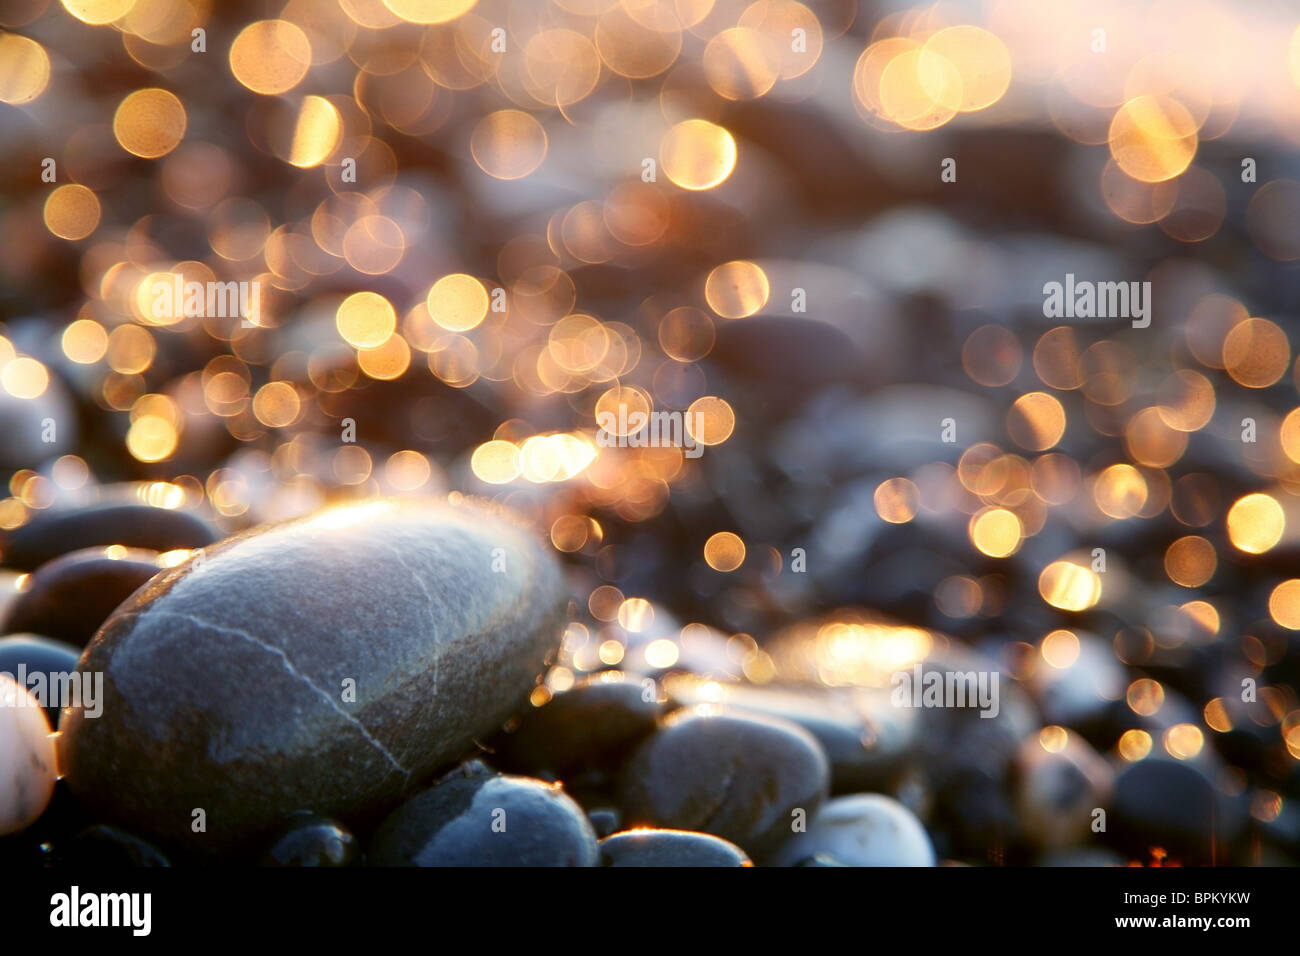 Background with sea stones and orange blurred circles. - Stock Image